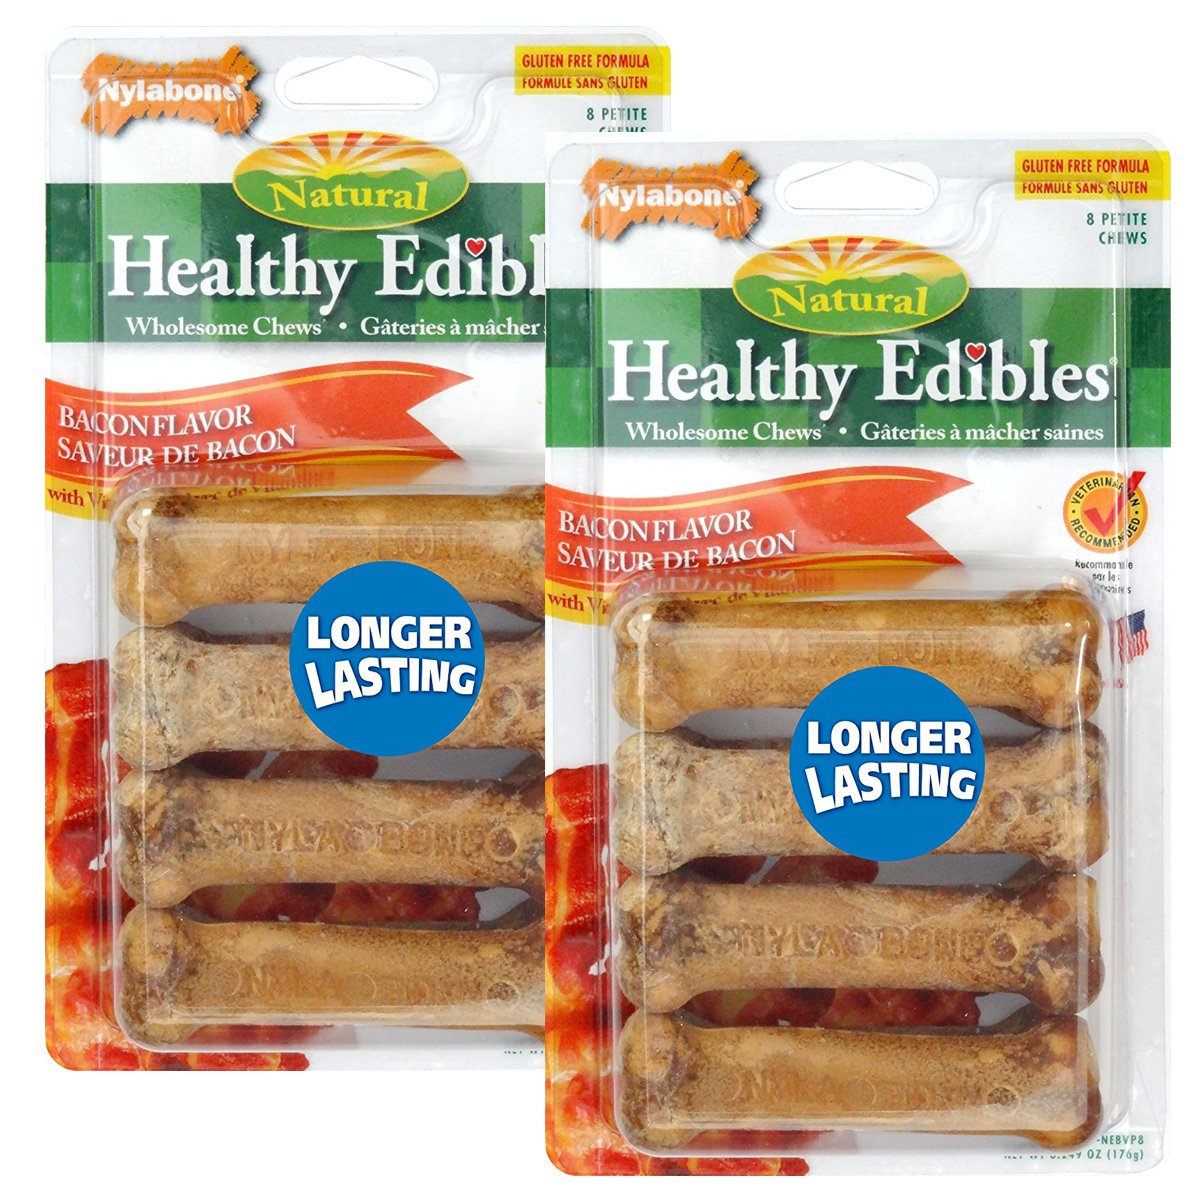 16 Count Nylabone Healthy Edibles Petite Bacon Flavored Dog Treats, 16 Count